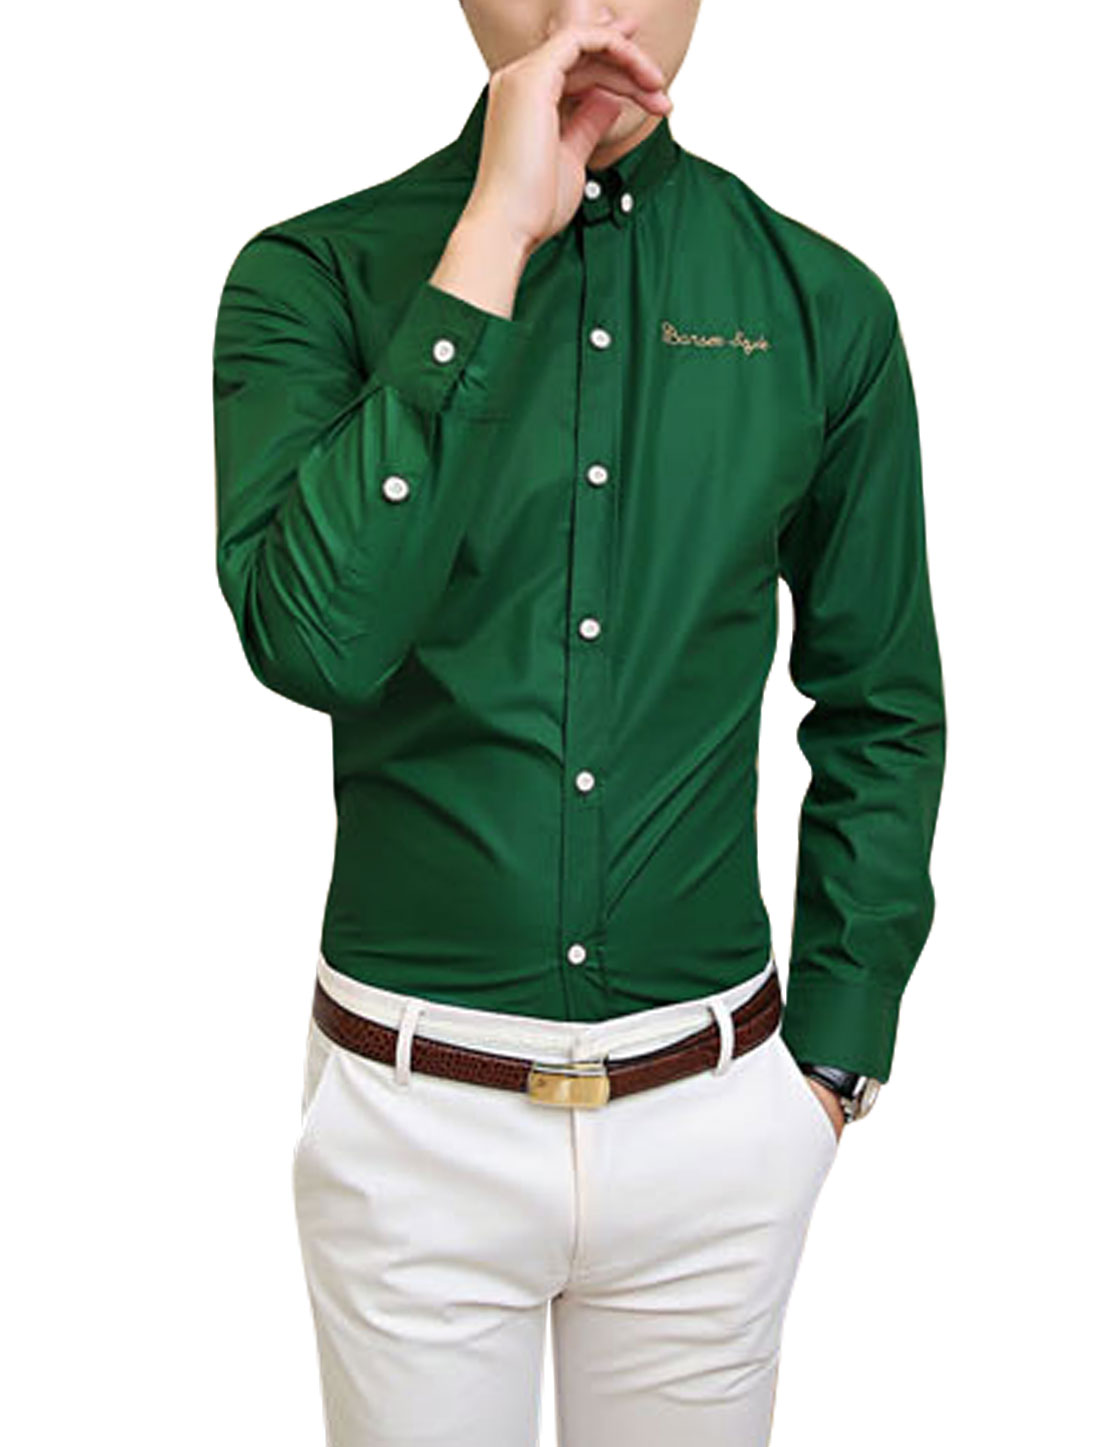 Korean Style Point Collar Button Up Dusty Green Shirt for Men M